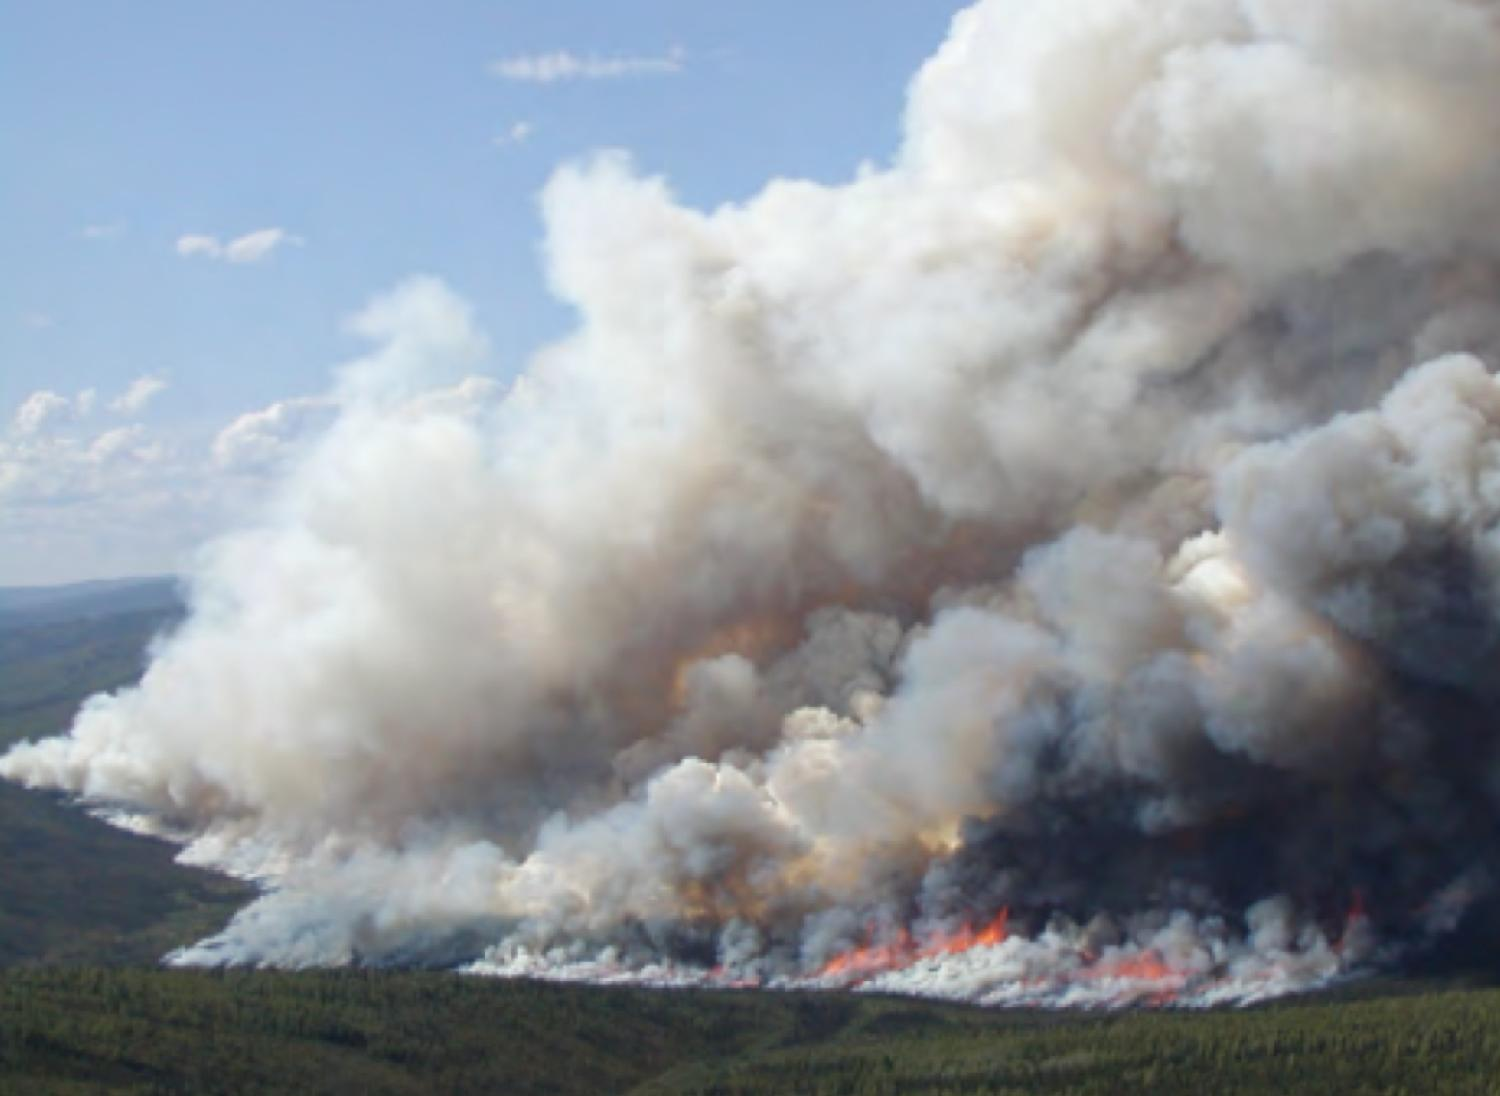 The start of the Ericson Creek fire that burned for three months north of Fairbanks in the severe fire season of 2004.